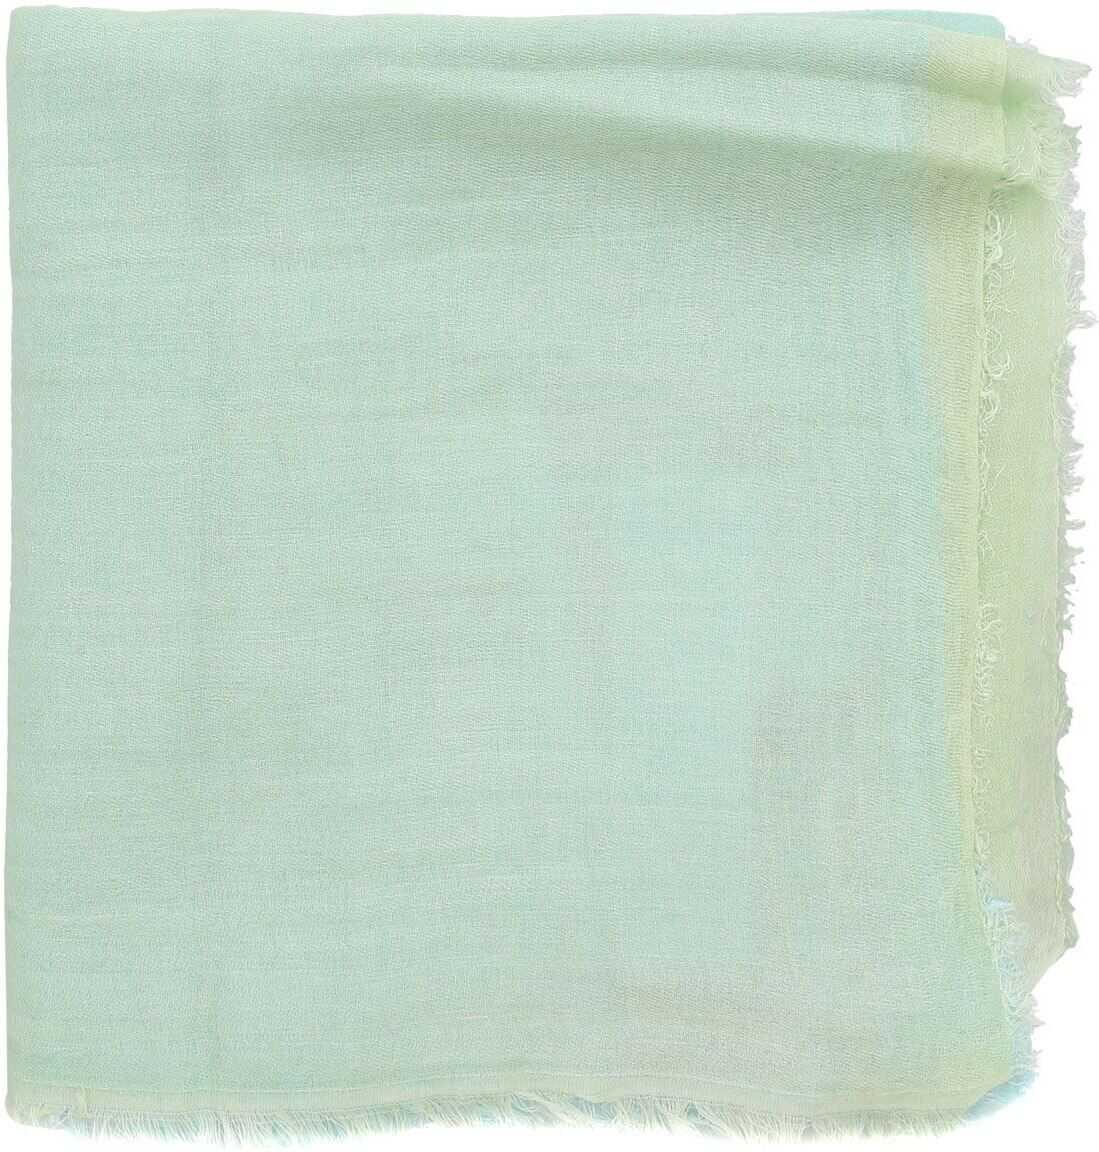 Be Blumarine Gradient Scarf In Green And Turquoise Turquoise